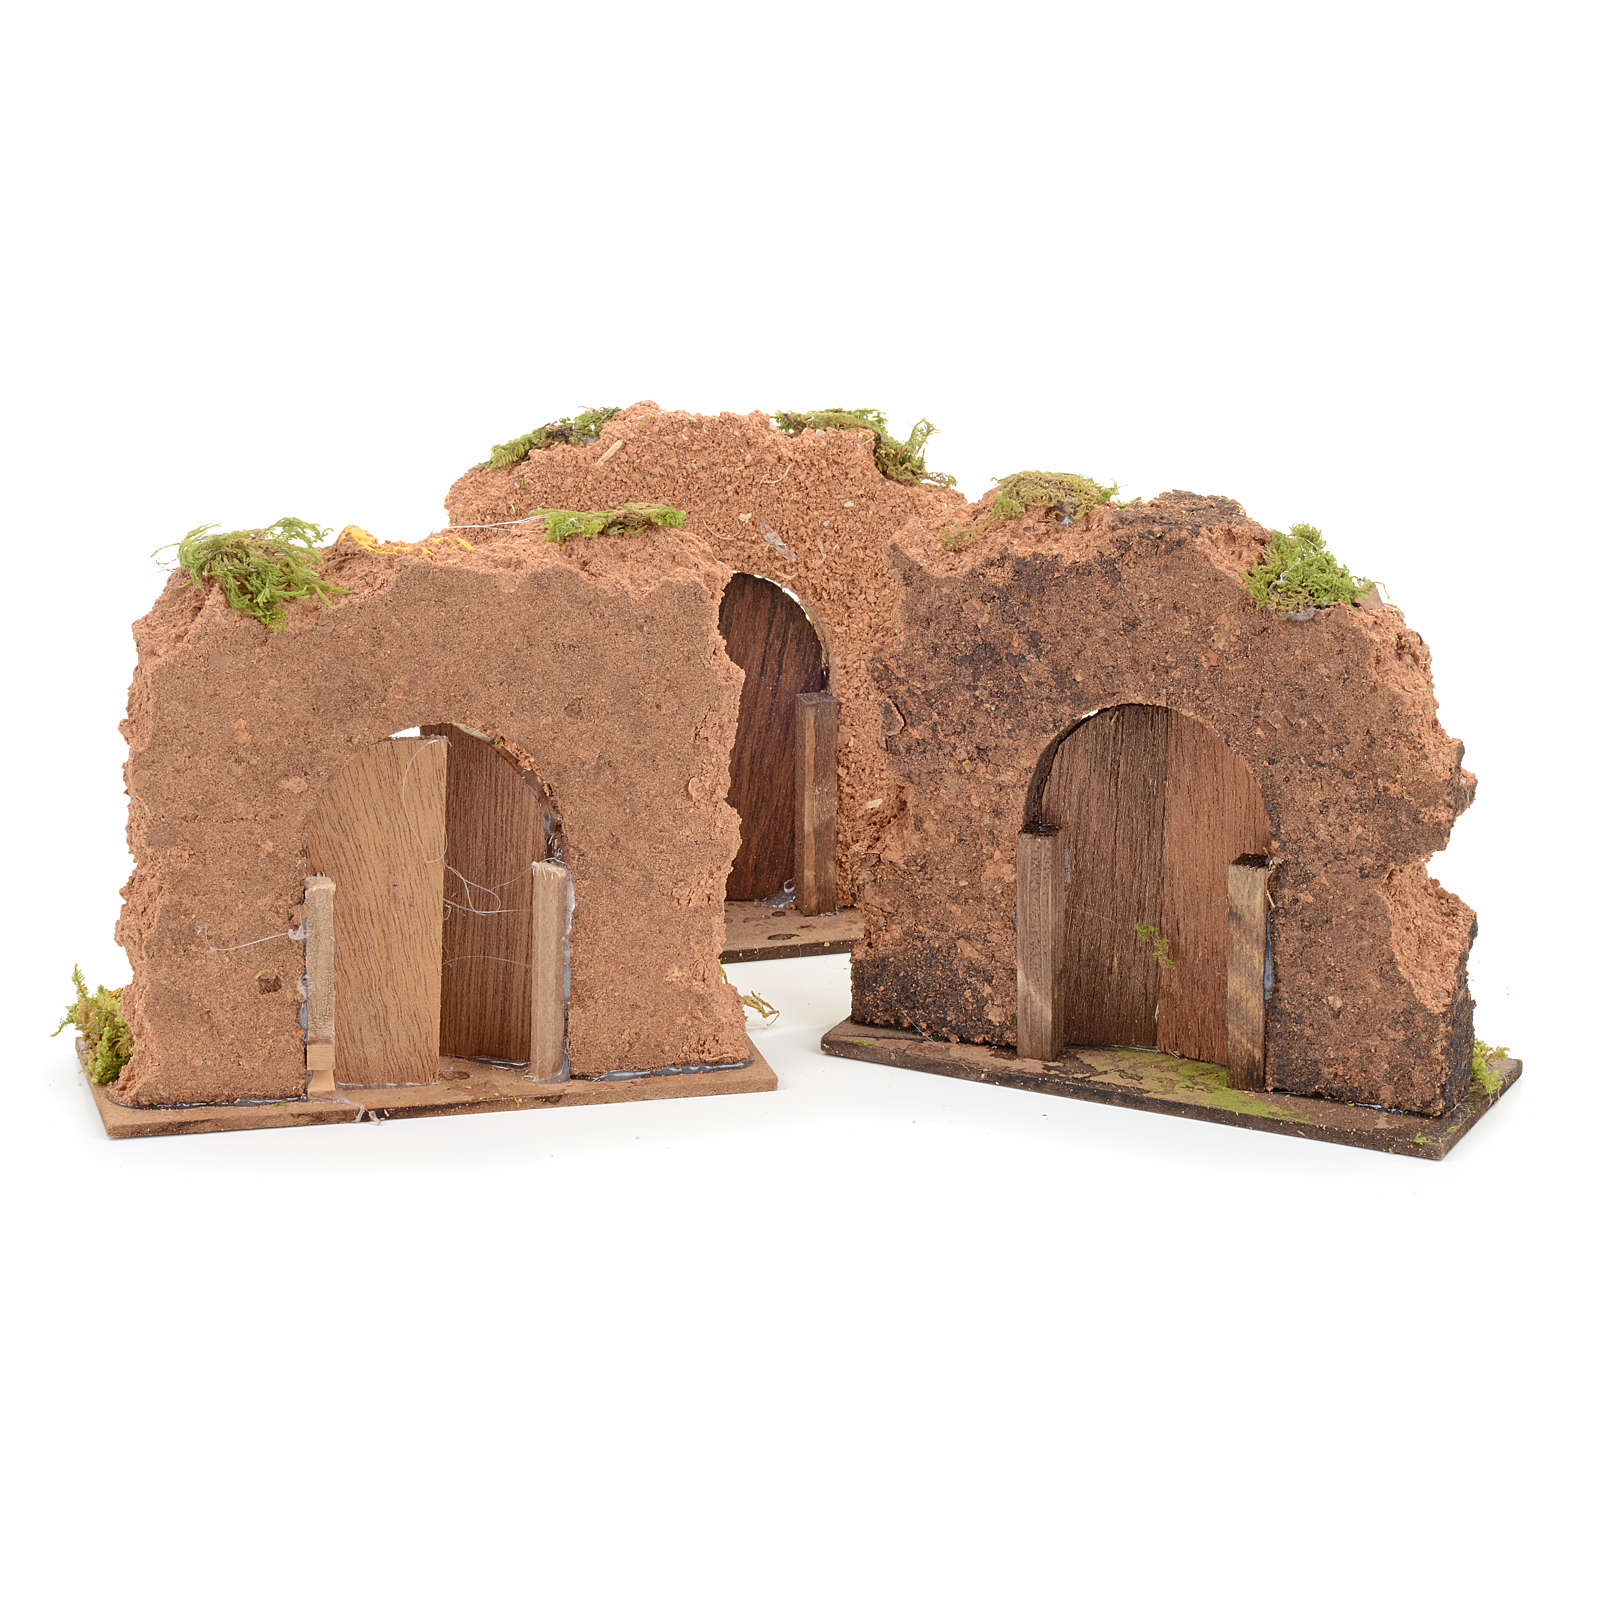 Nativity set accessory, cork wall with arch door 4